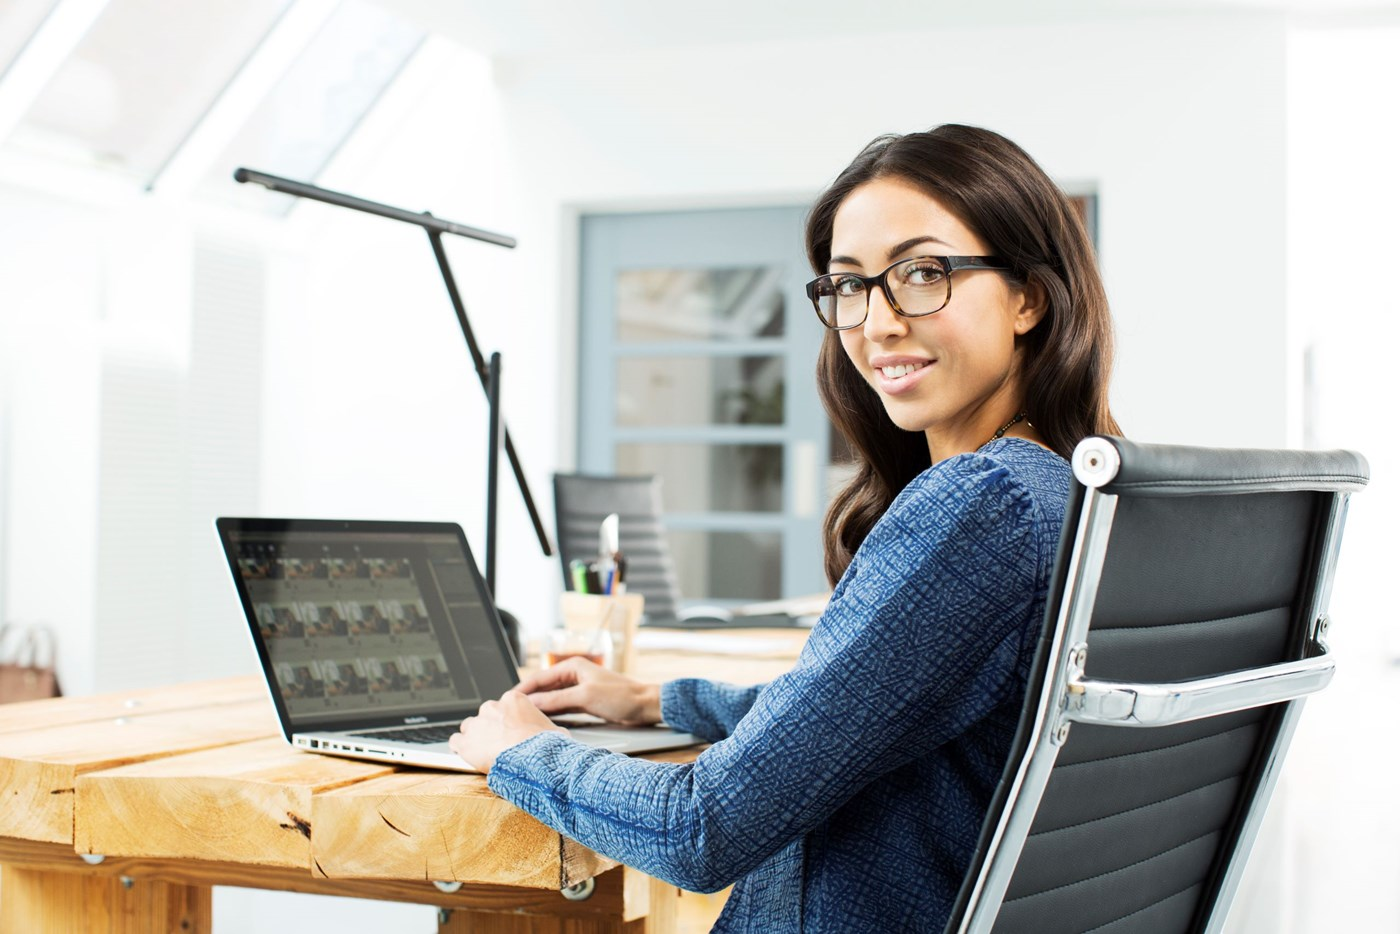 Female sat behind laptop screen wearing eyeglasses